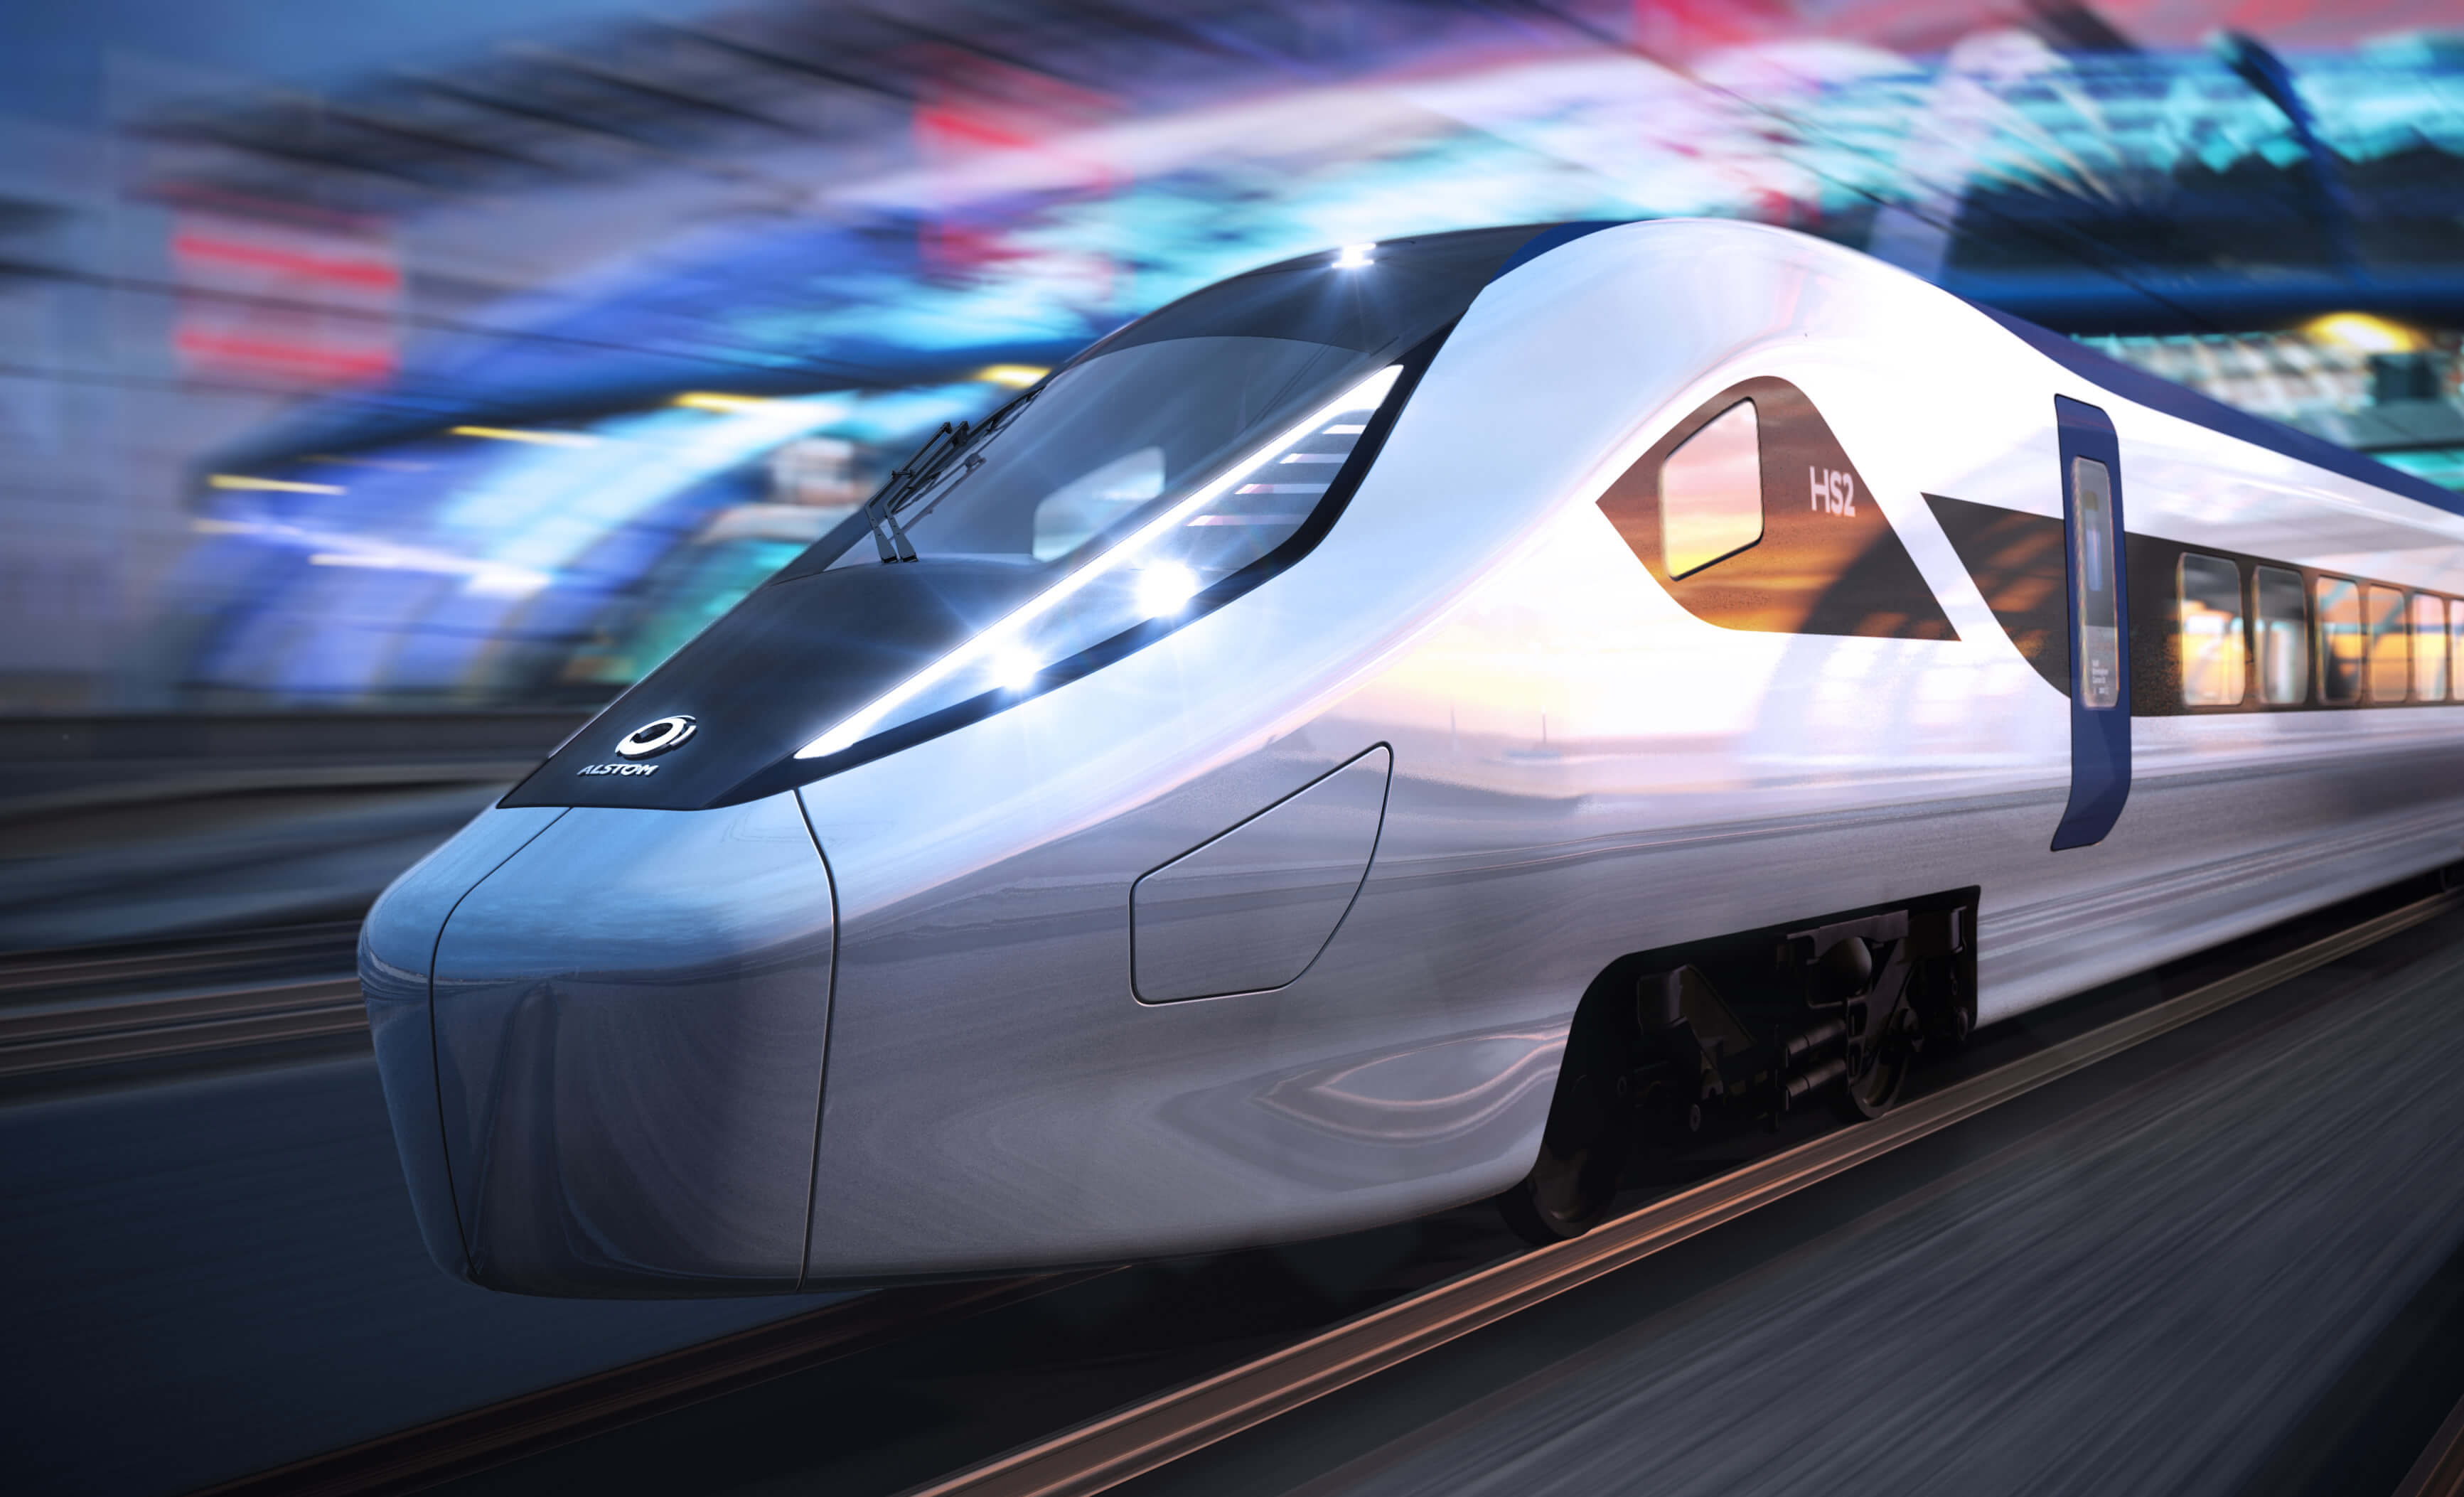 HS2 backs PBAs